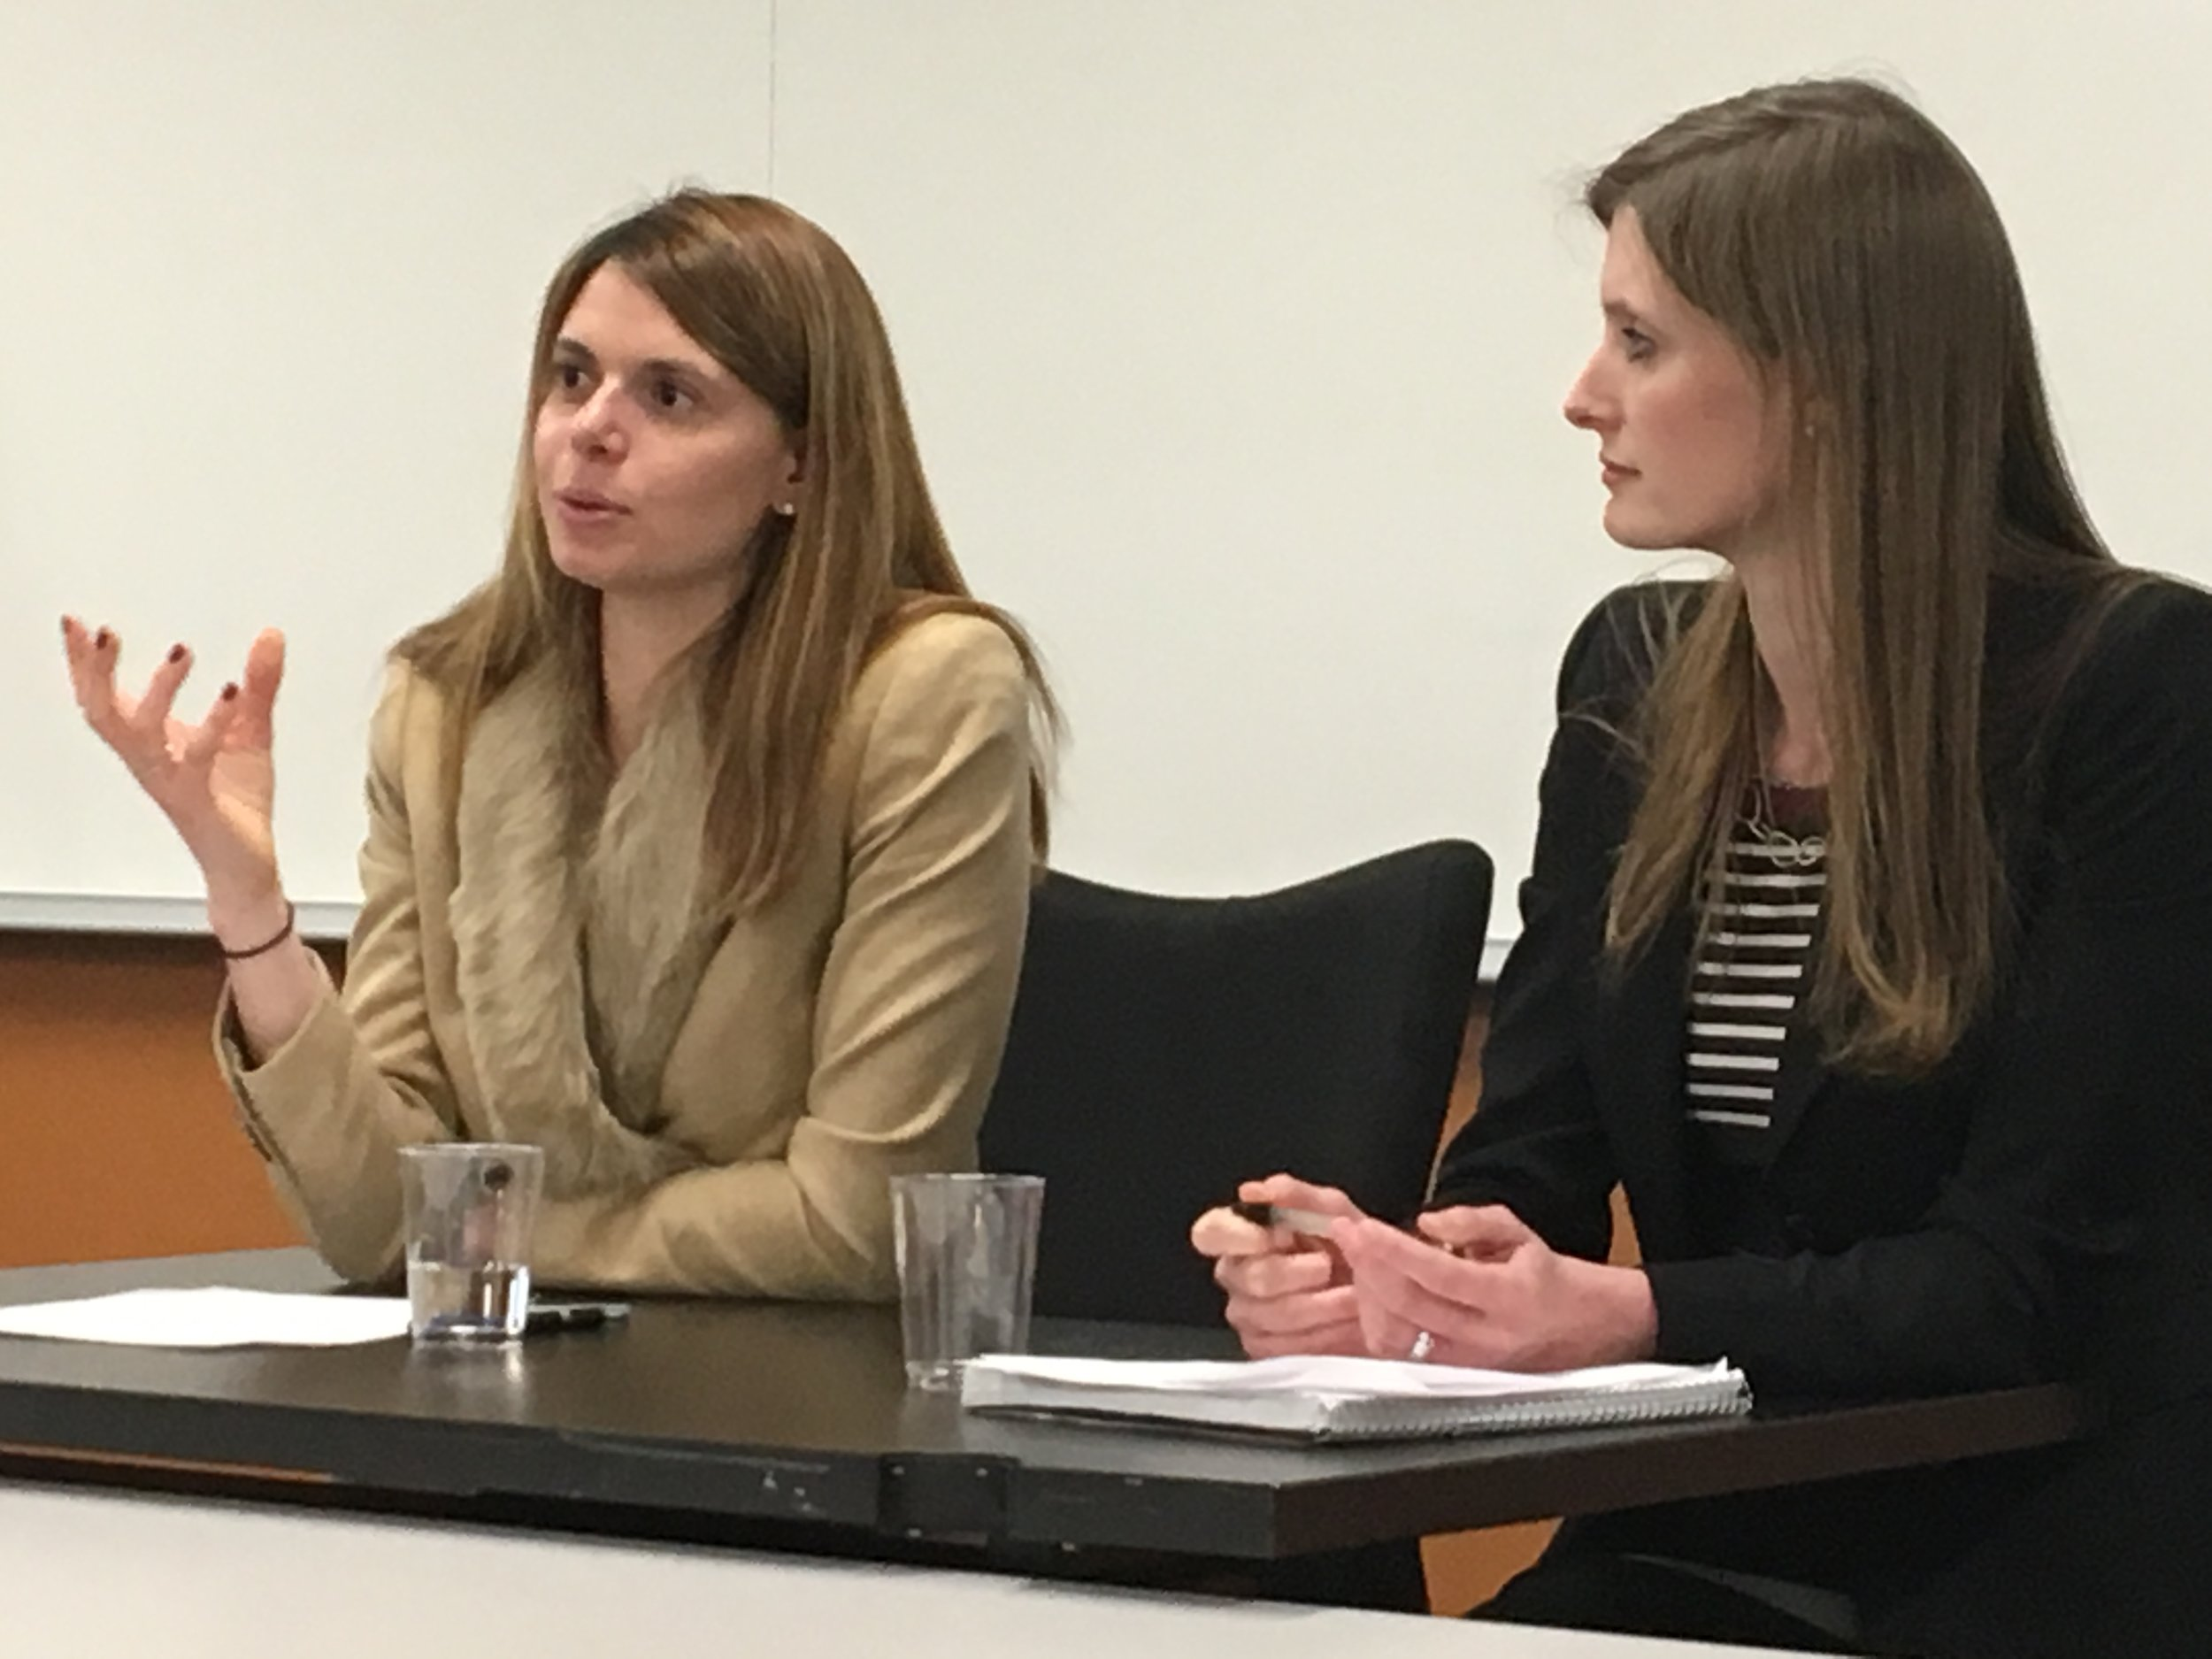 Sara Solow (L) addresses Georgetown Law students during an interview with Institute Executive Director Alexandra Givens (R)